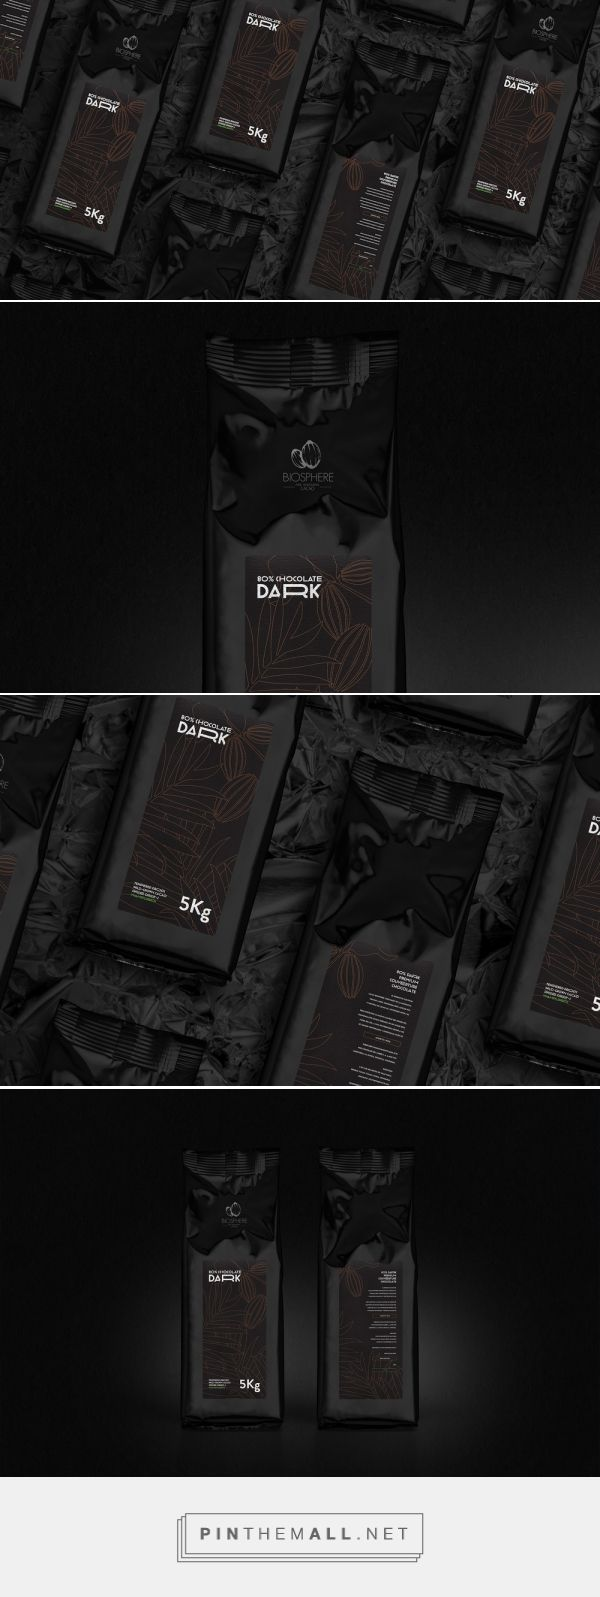 Biosphere - Fine Honduran Cacao — The Dieline - Branding & Packaging - created via http://pinthemall.net